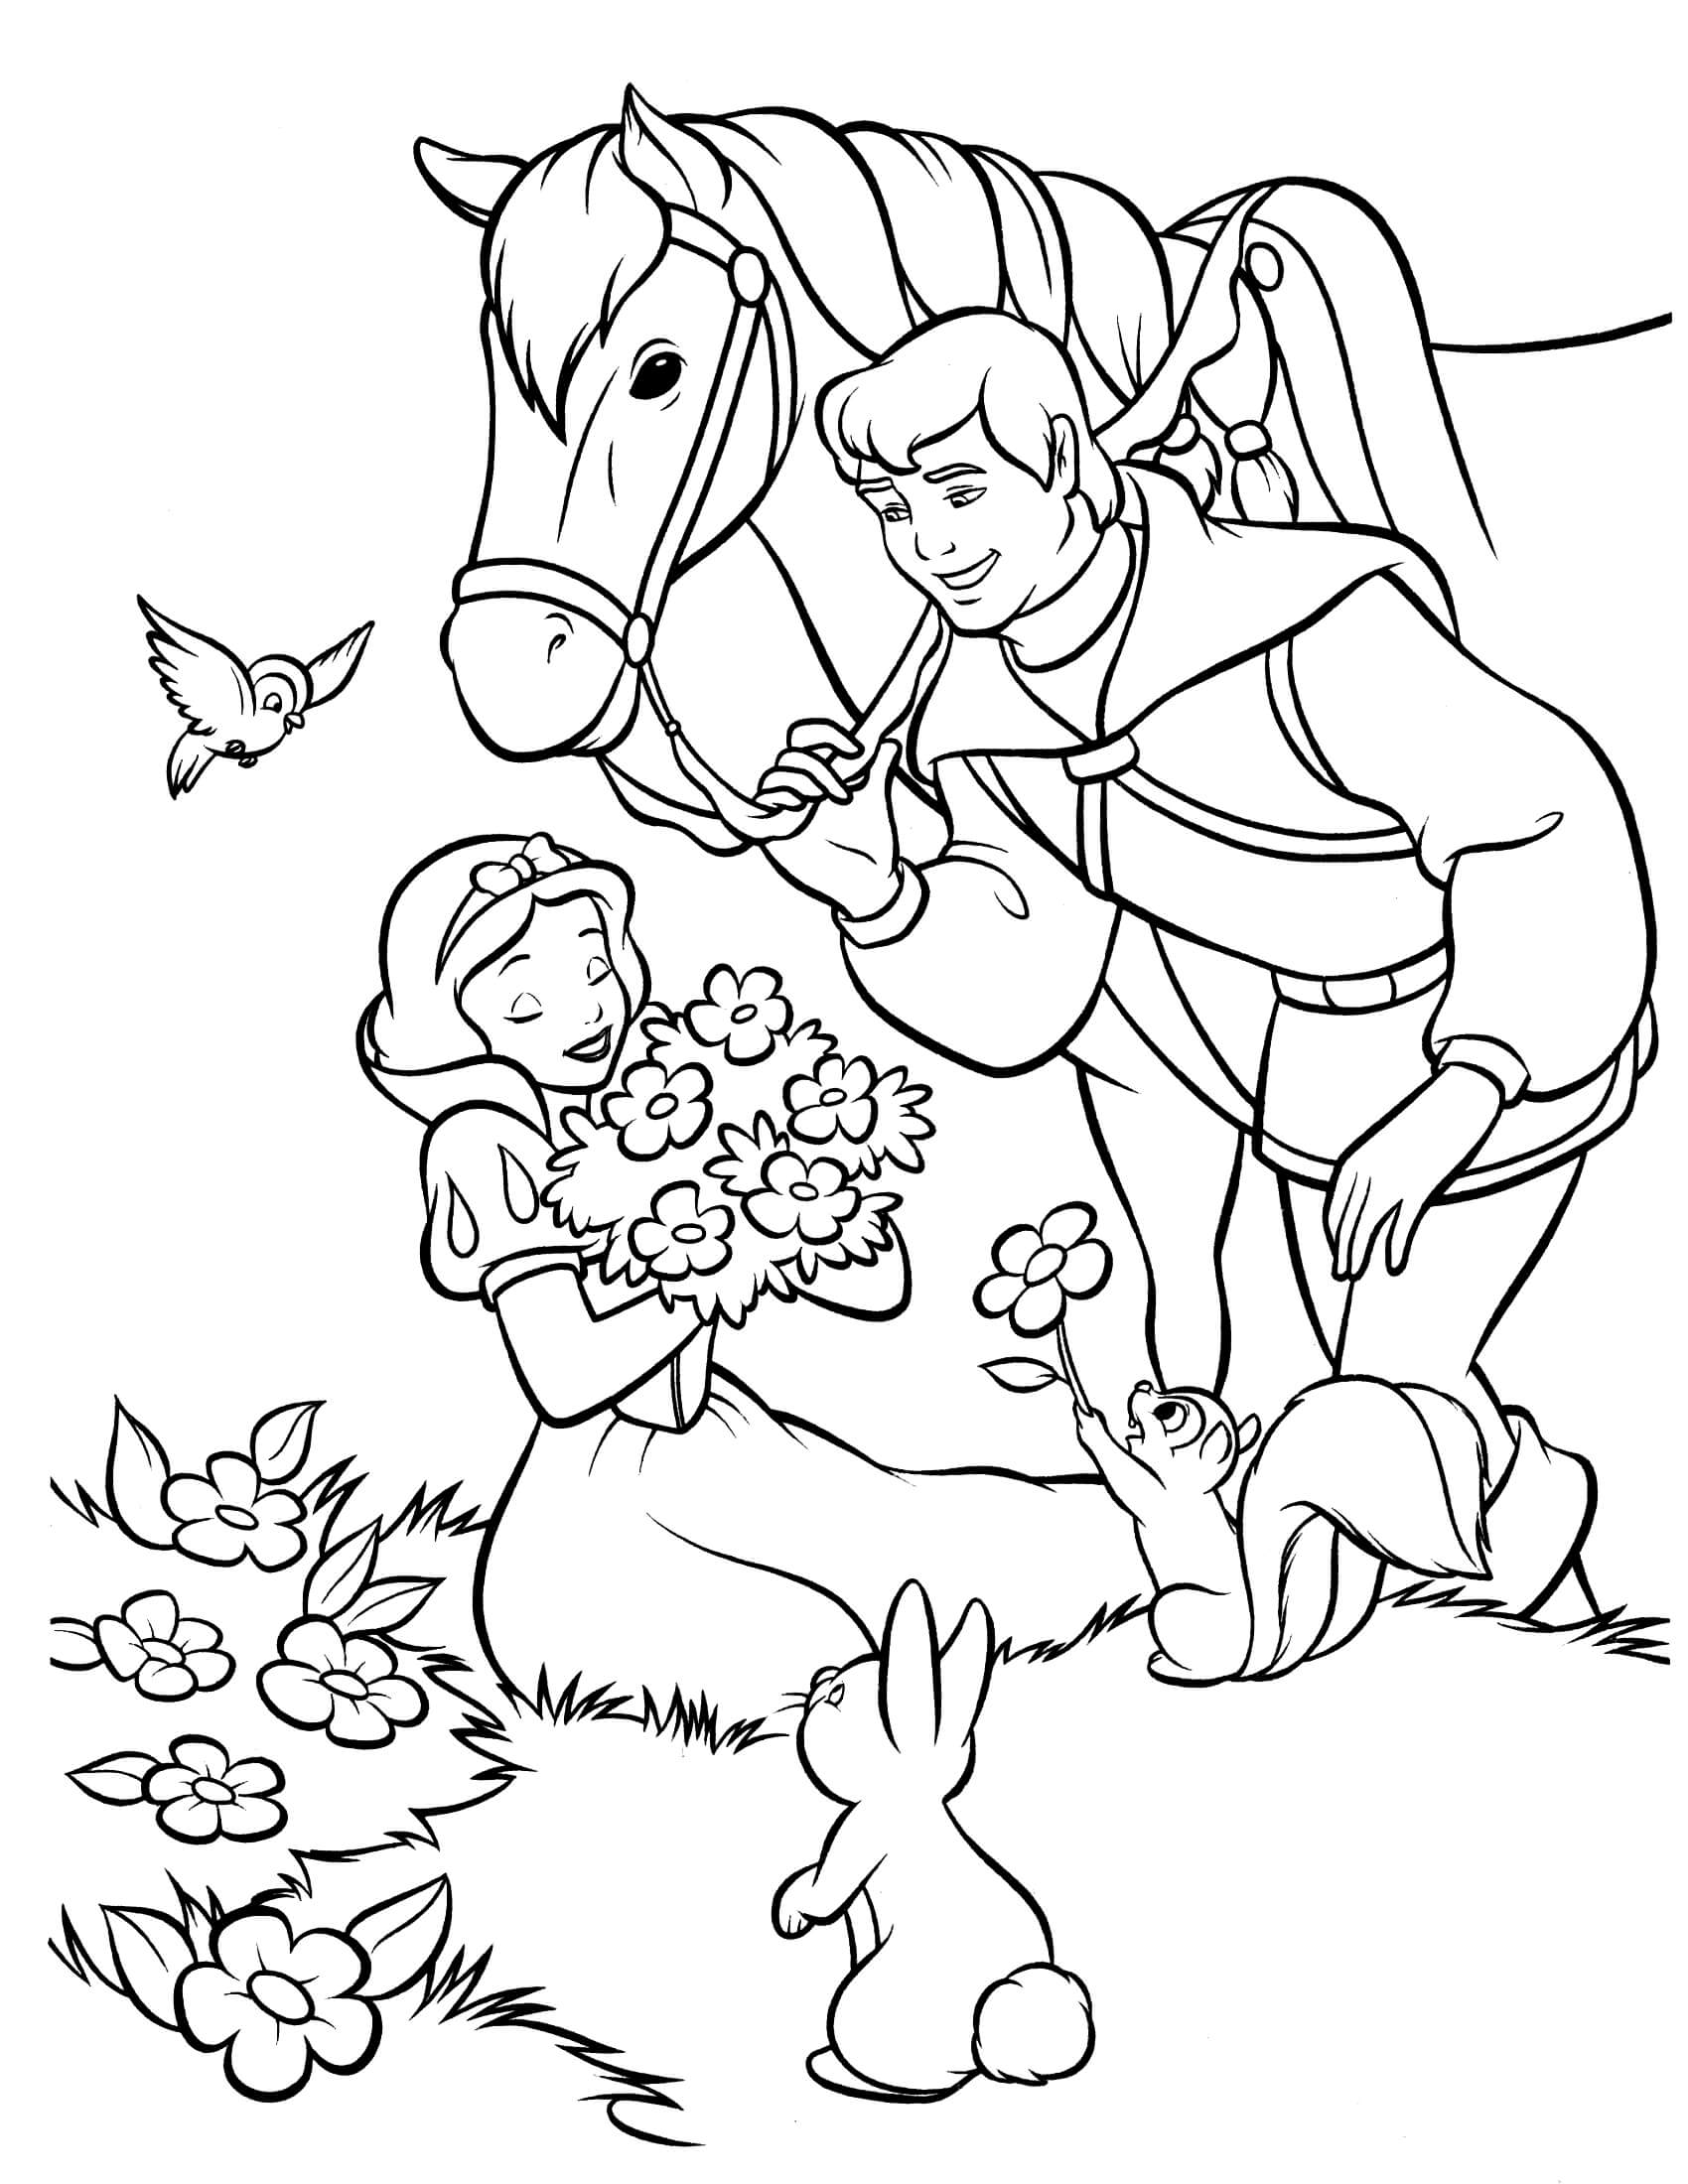 snowwhite coloring snow white coloring pages best coloring pages for kids coloring snowwhite 1 1